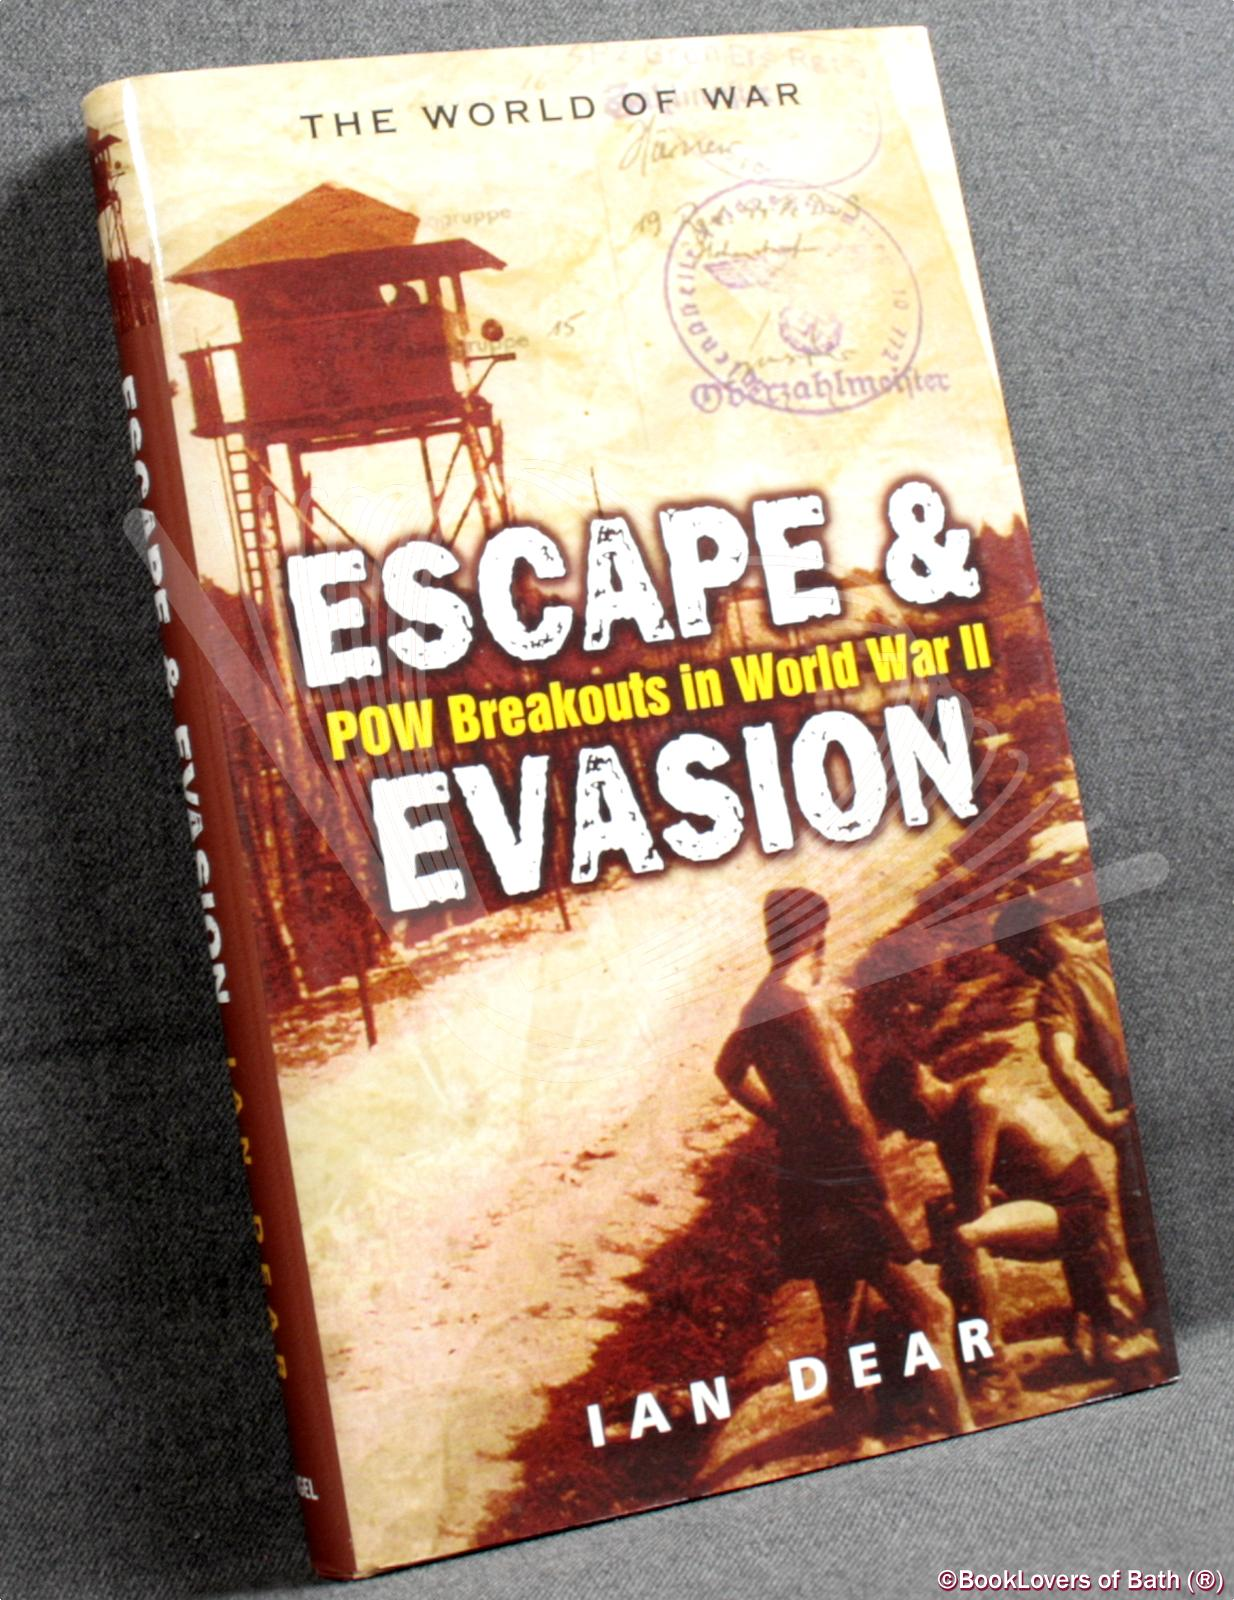 Escape & Evasion: POW Breakouts in World War II - Ian Dear